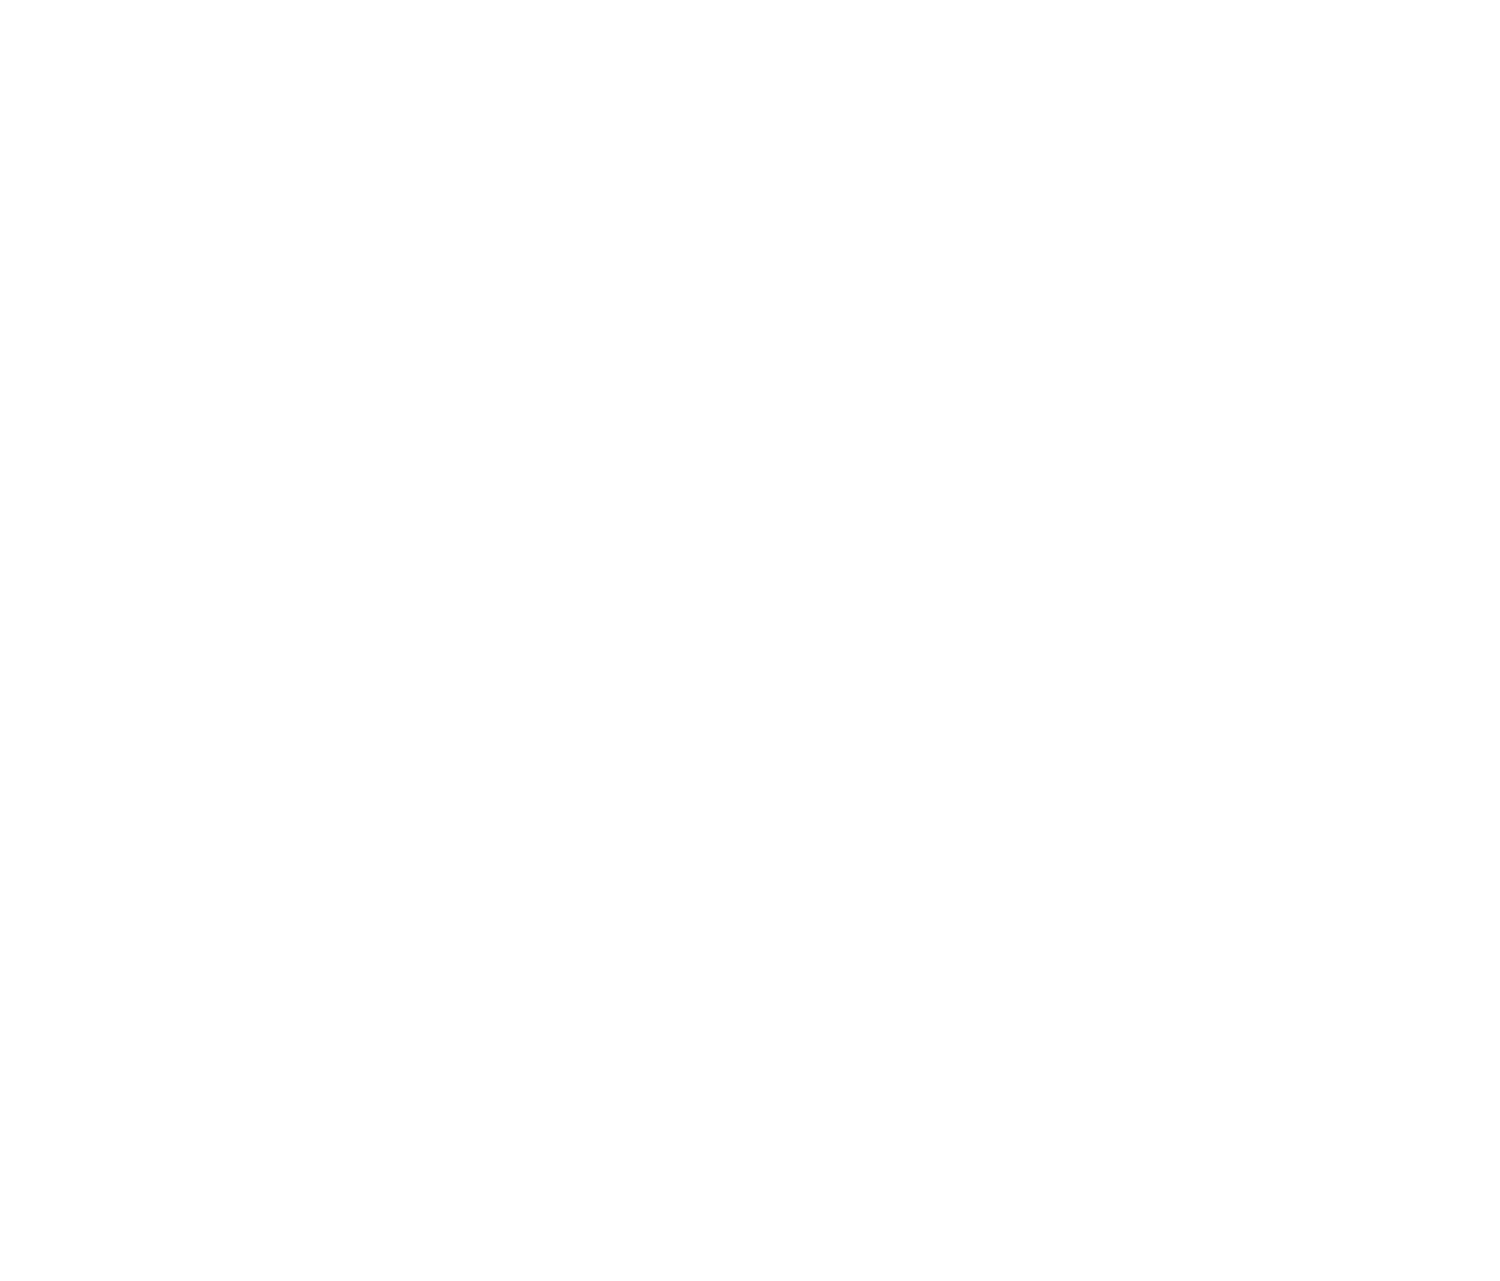 Stu Brewer - Studio Brewdio